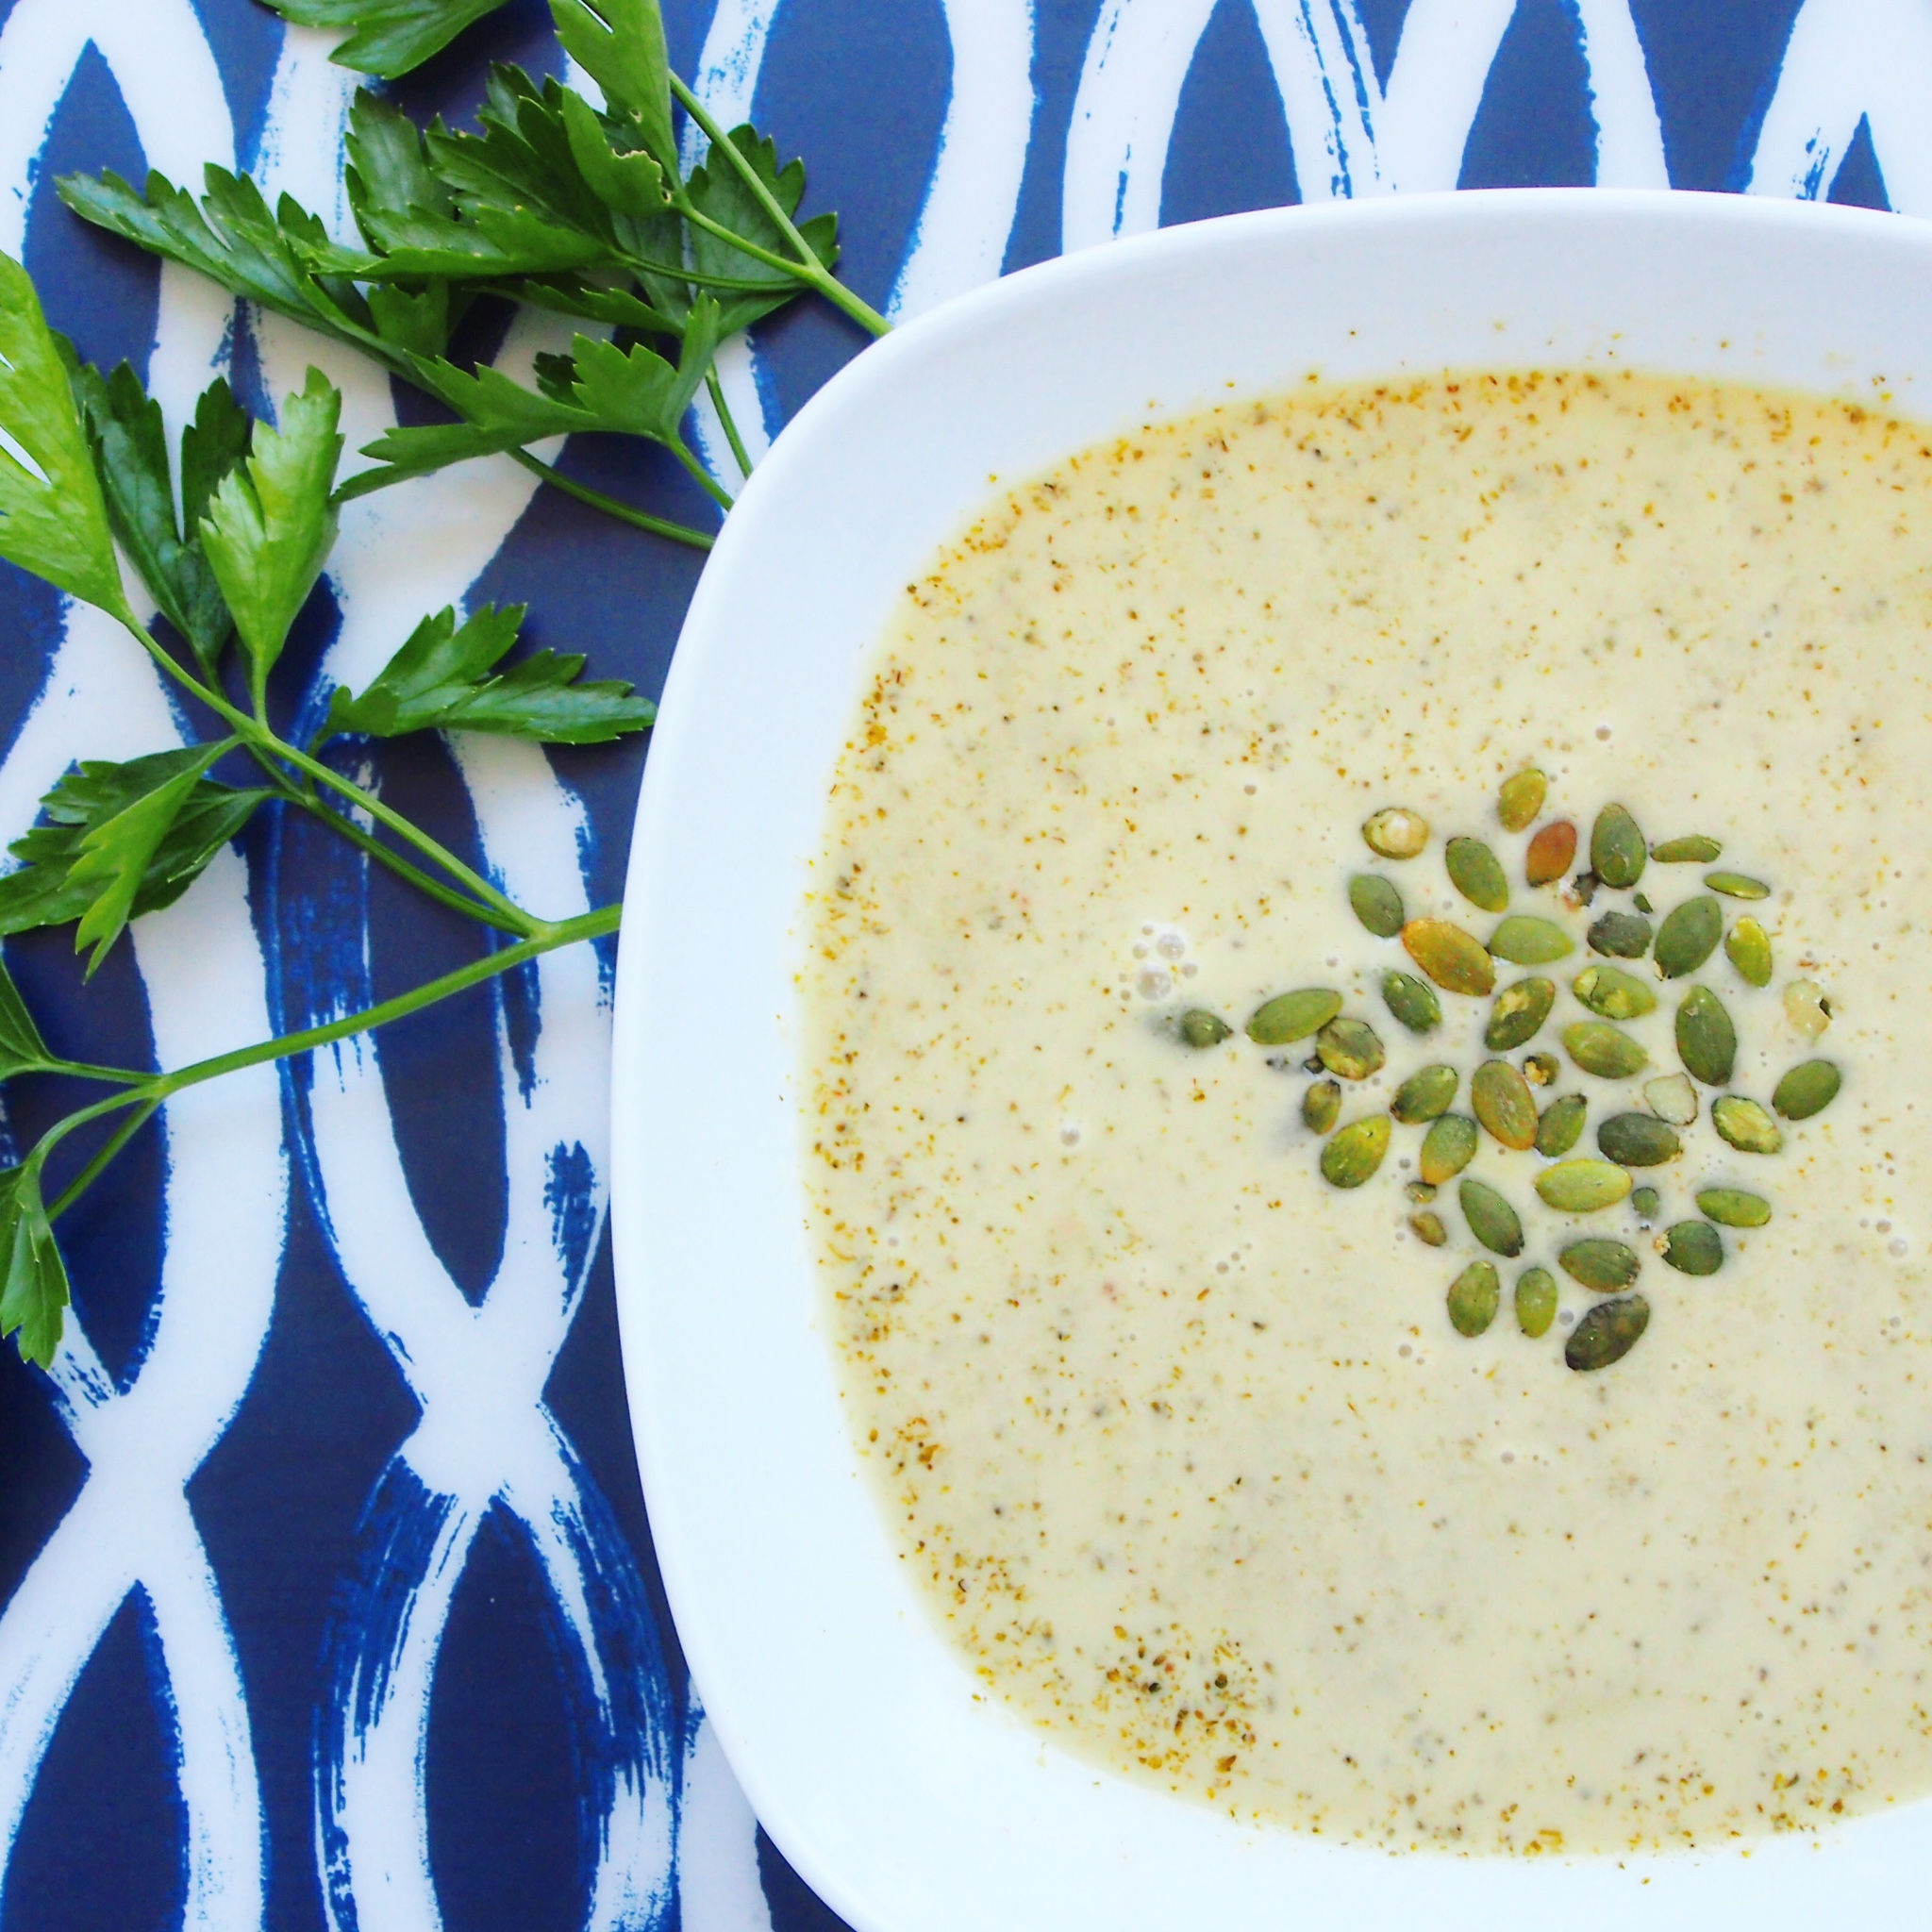 This roasted broccoli soup with spiced pepitas will warm you up on a cool night! The flavors from the roasted broccoli are enough to satisfy your appetite, but the spiced pepita recipe also adds a depth to the broccoli soup that is sure to comfort you when it's cold outside!